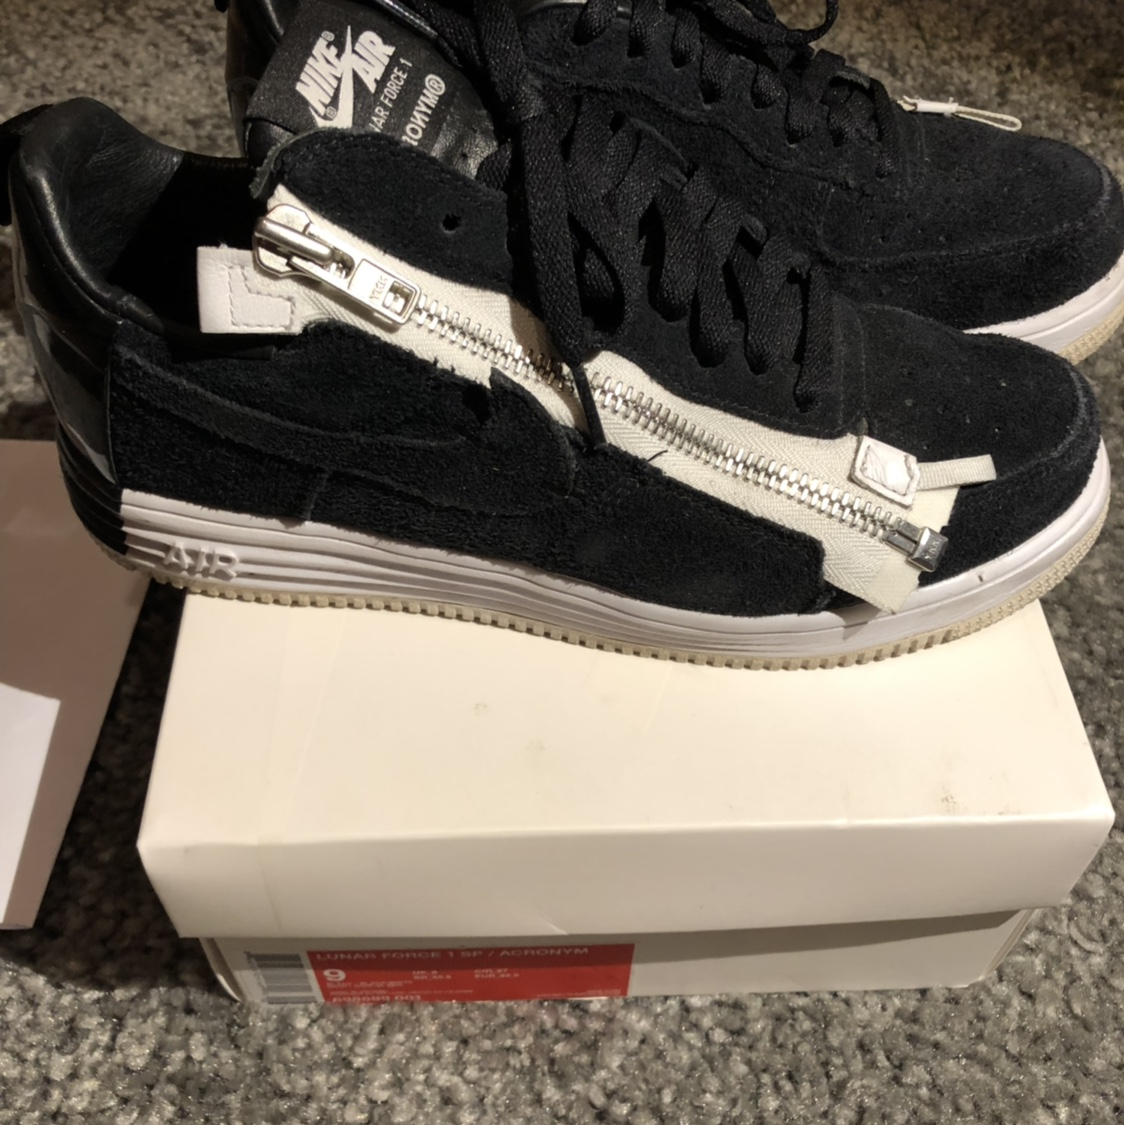 Very Rare Acronym X Nike Air Force 1 Lunar Black